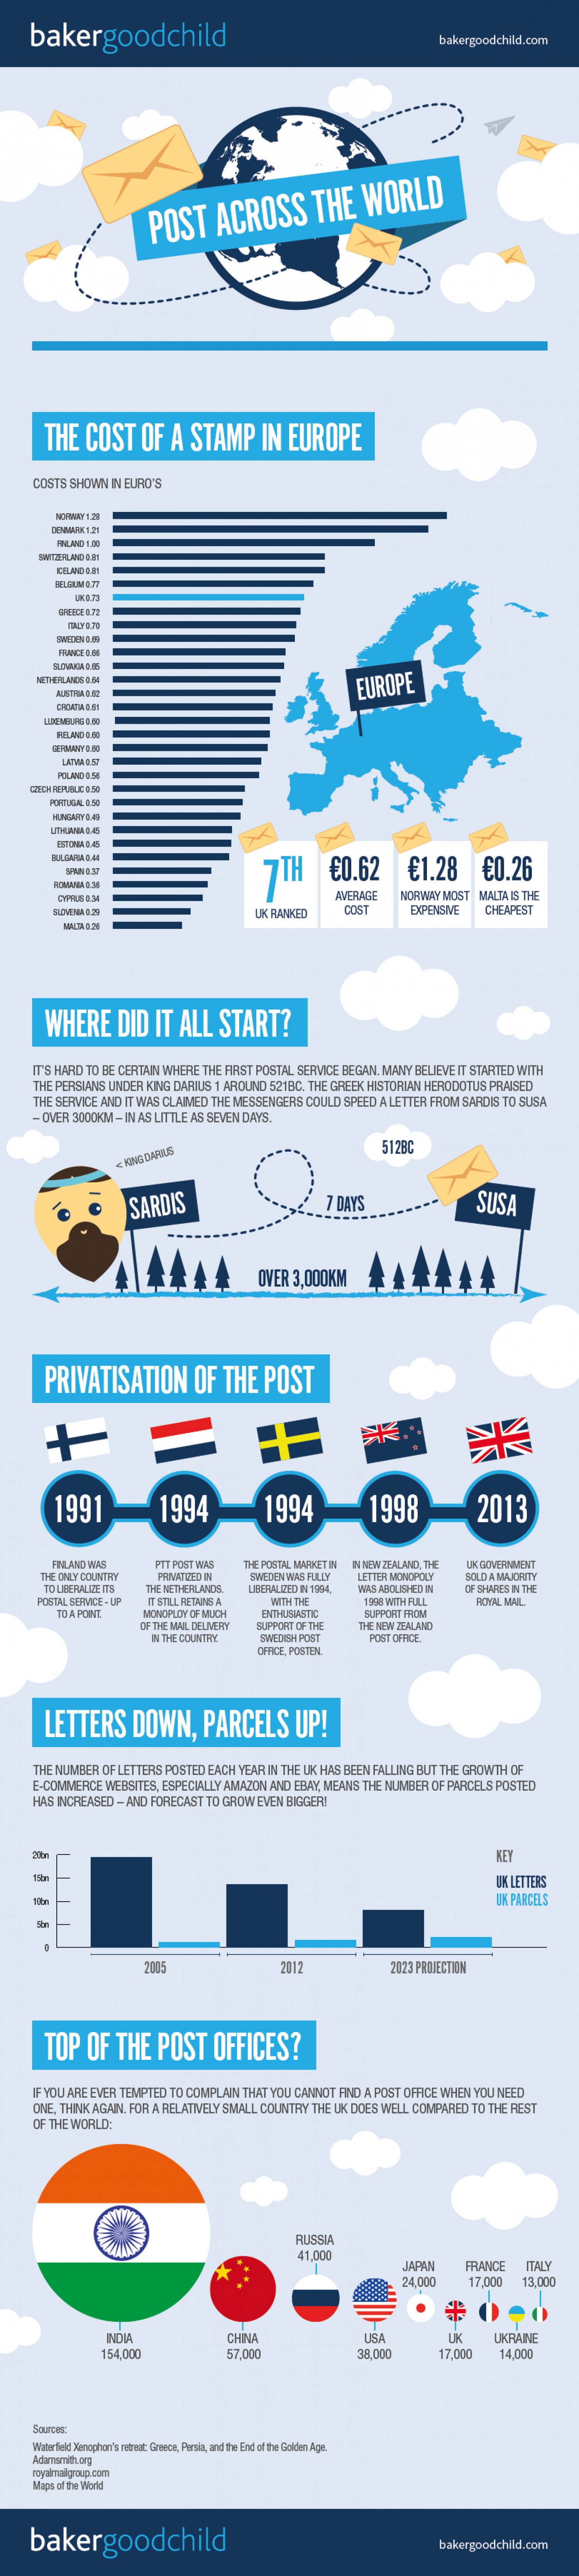 Post Across the World Infographic